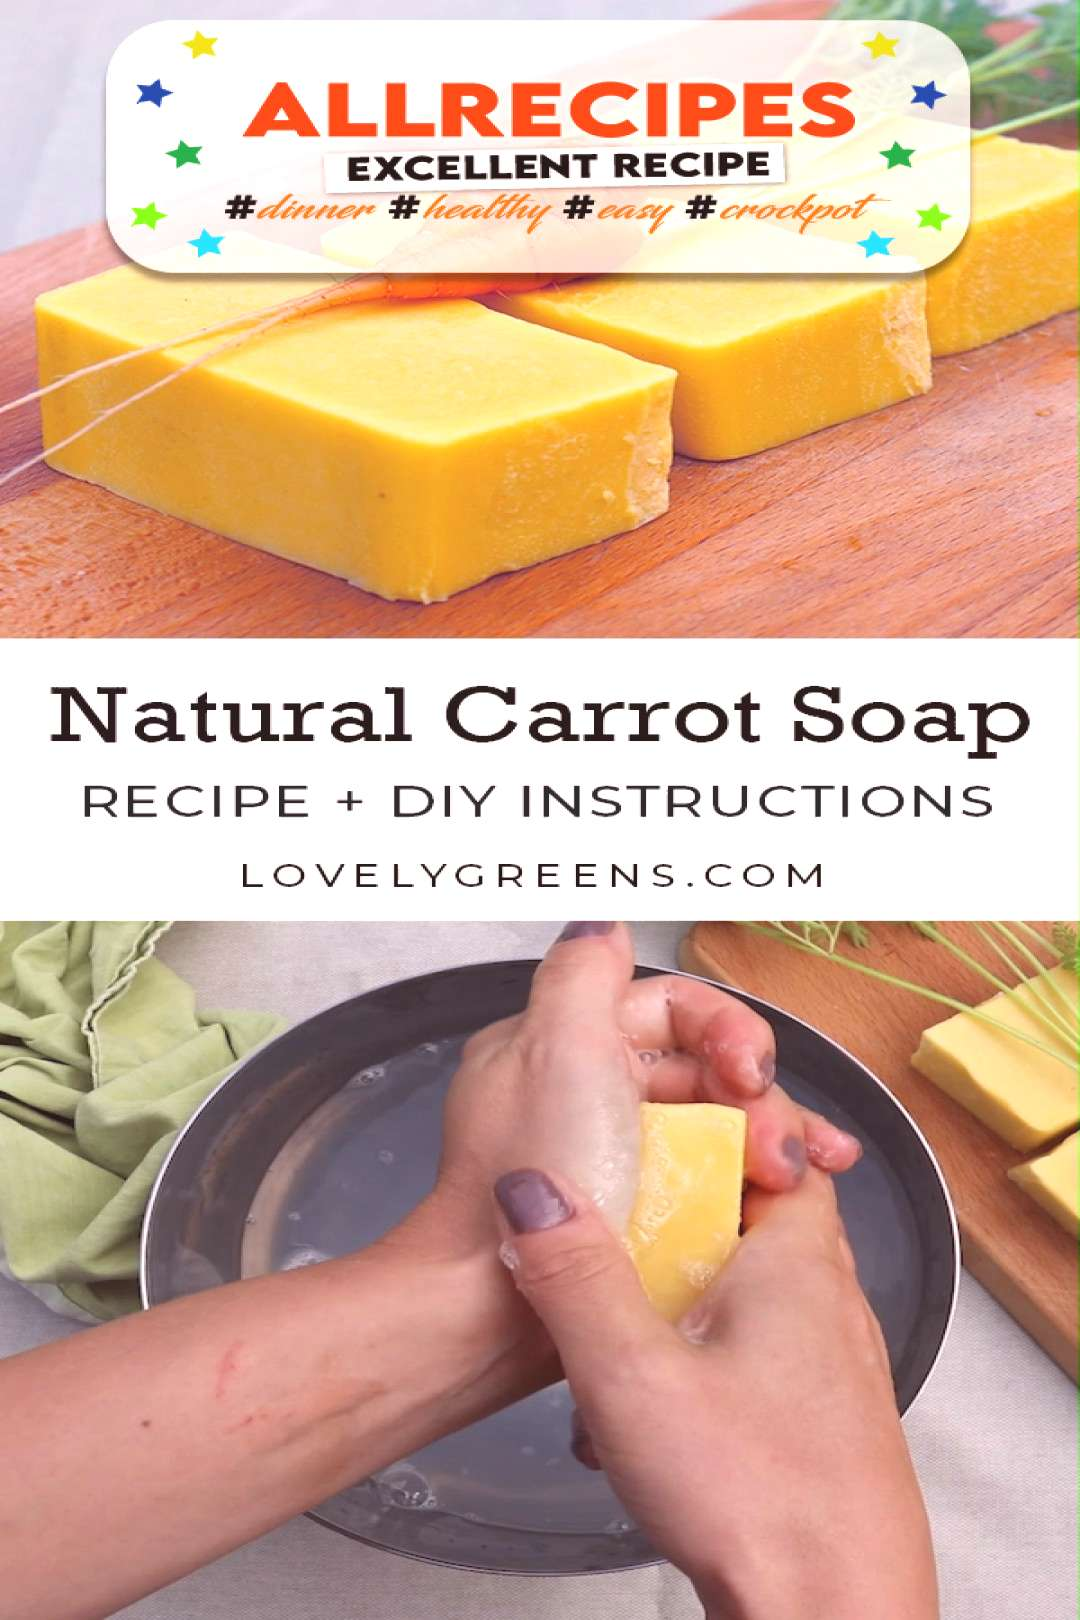 All Natural Carrot Soap Recipe with Real Carrots - - How to make natural carrot soap using the cold